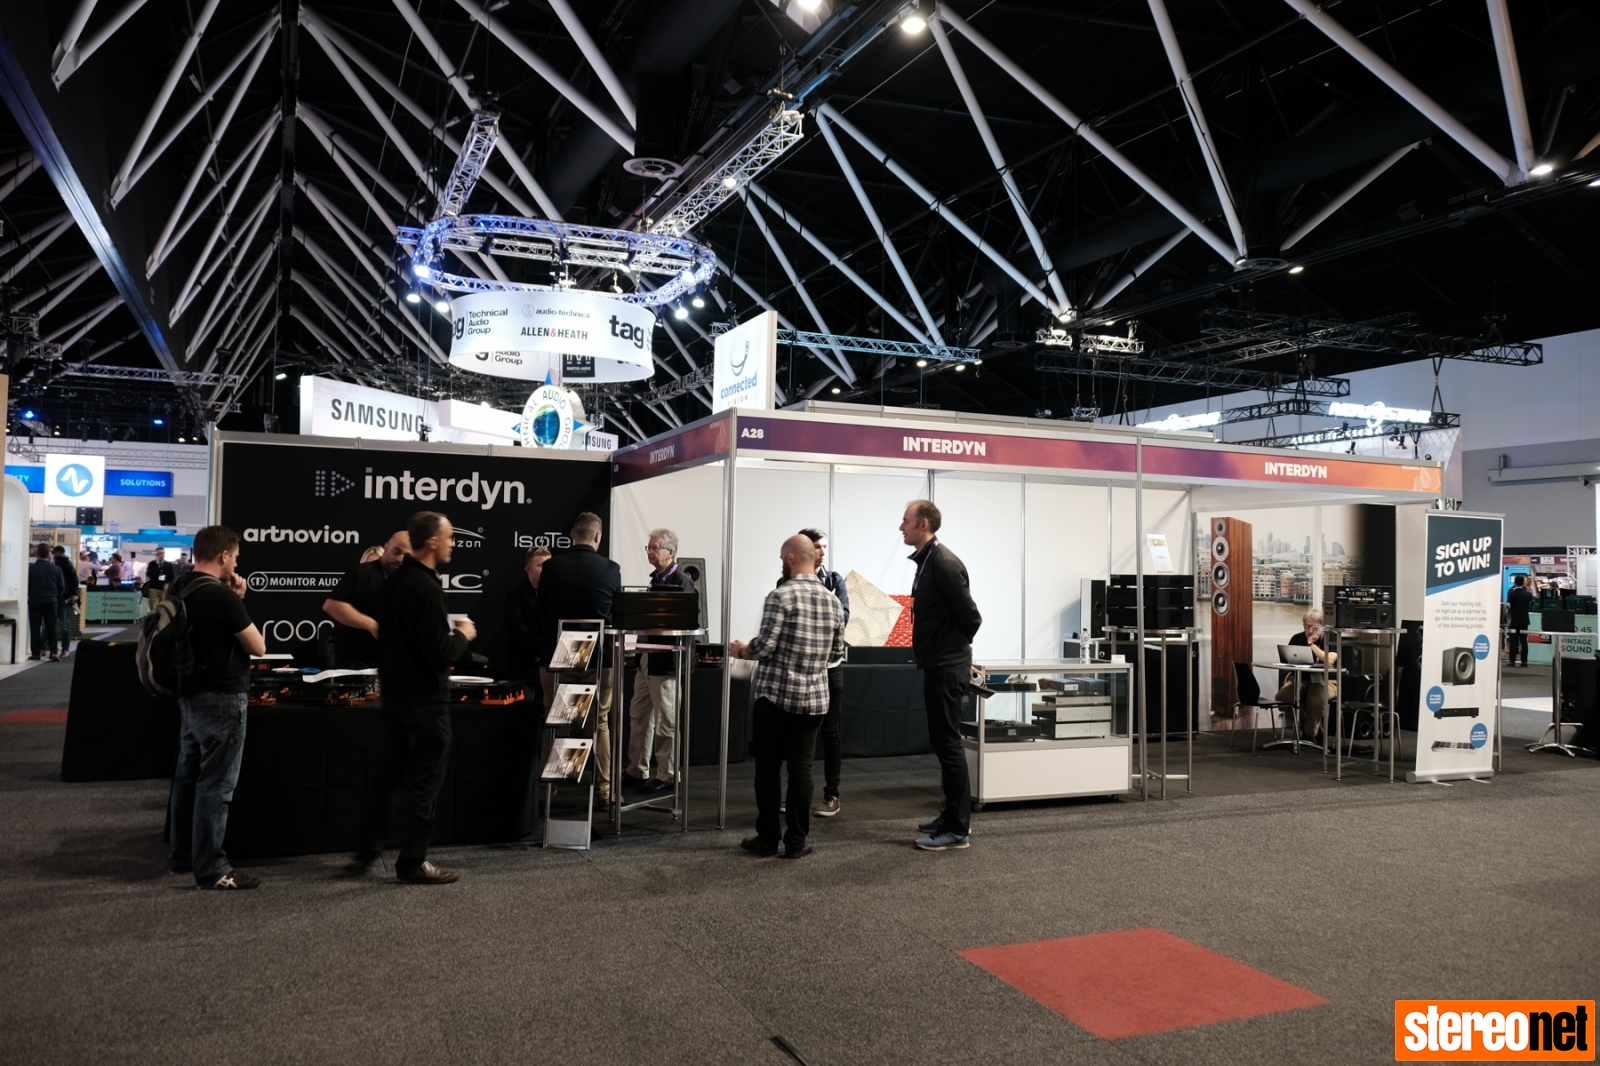 Interdyn at Integrate Trade Show, 2018